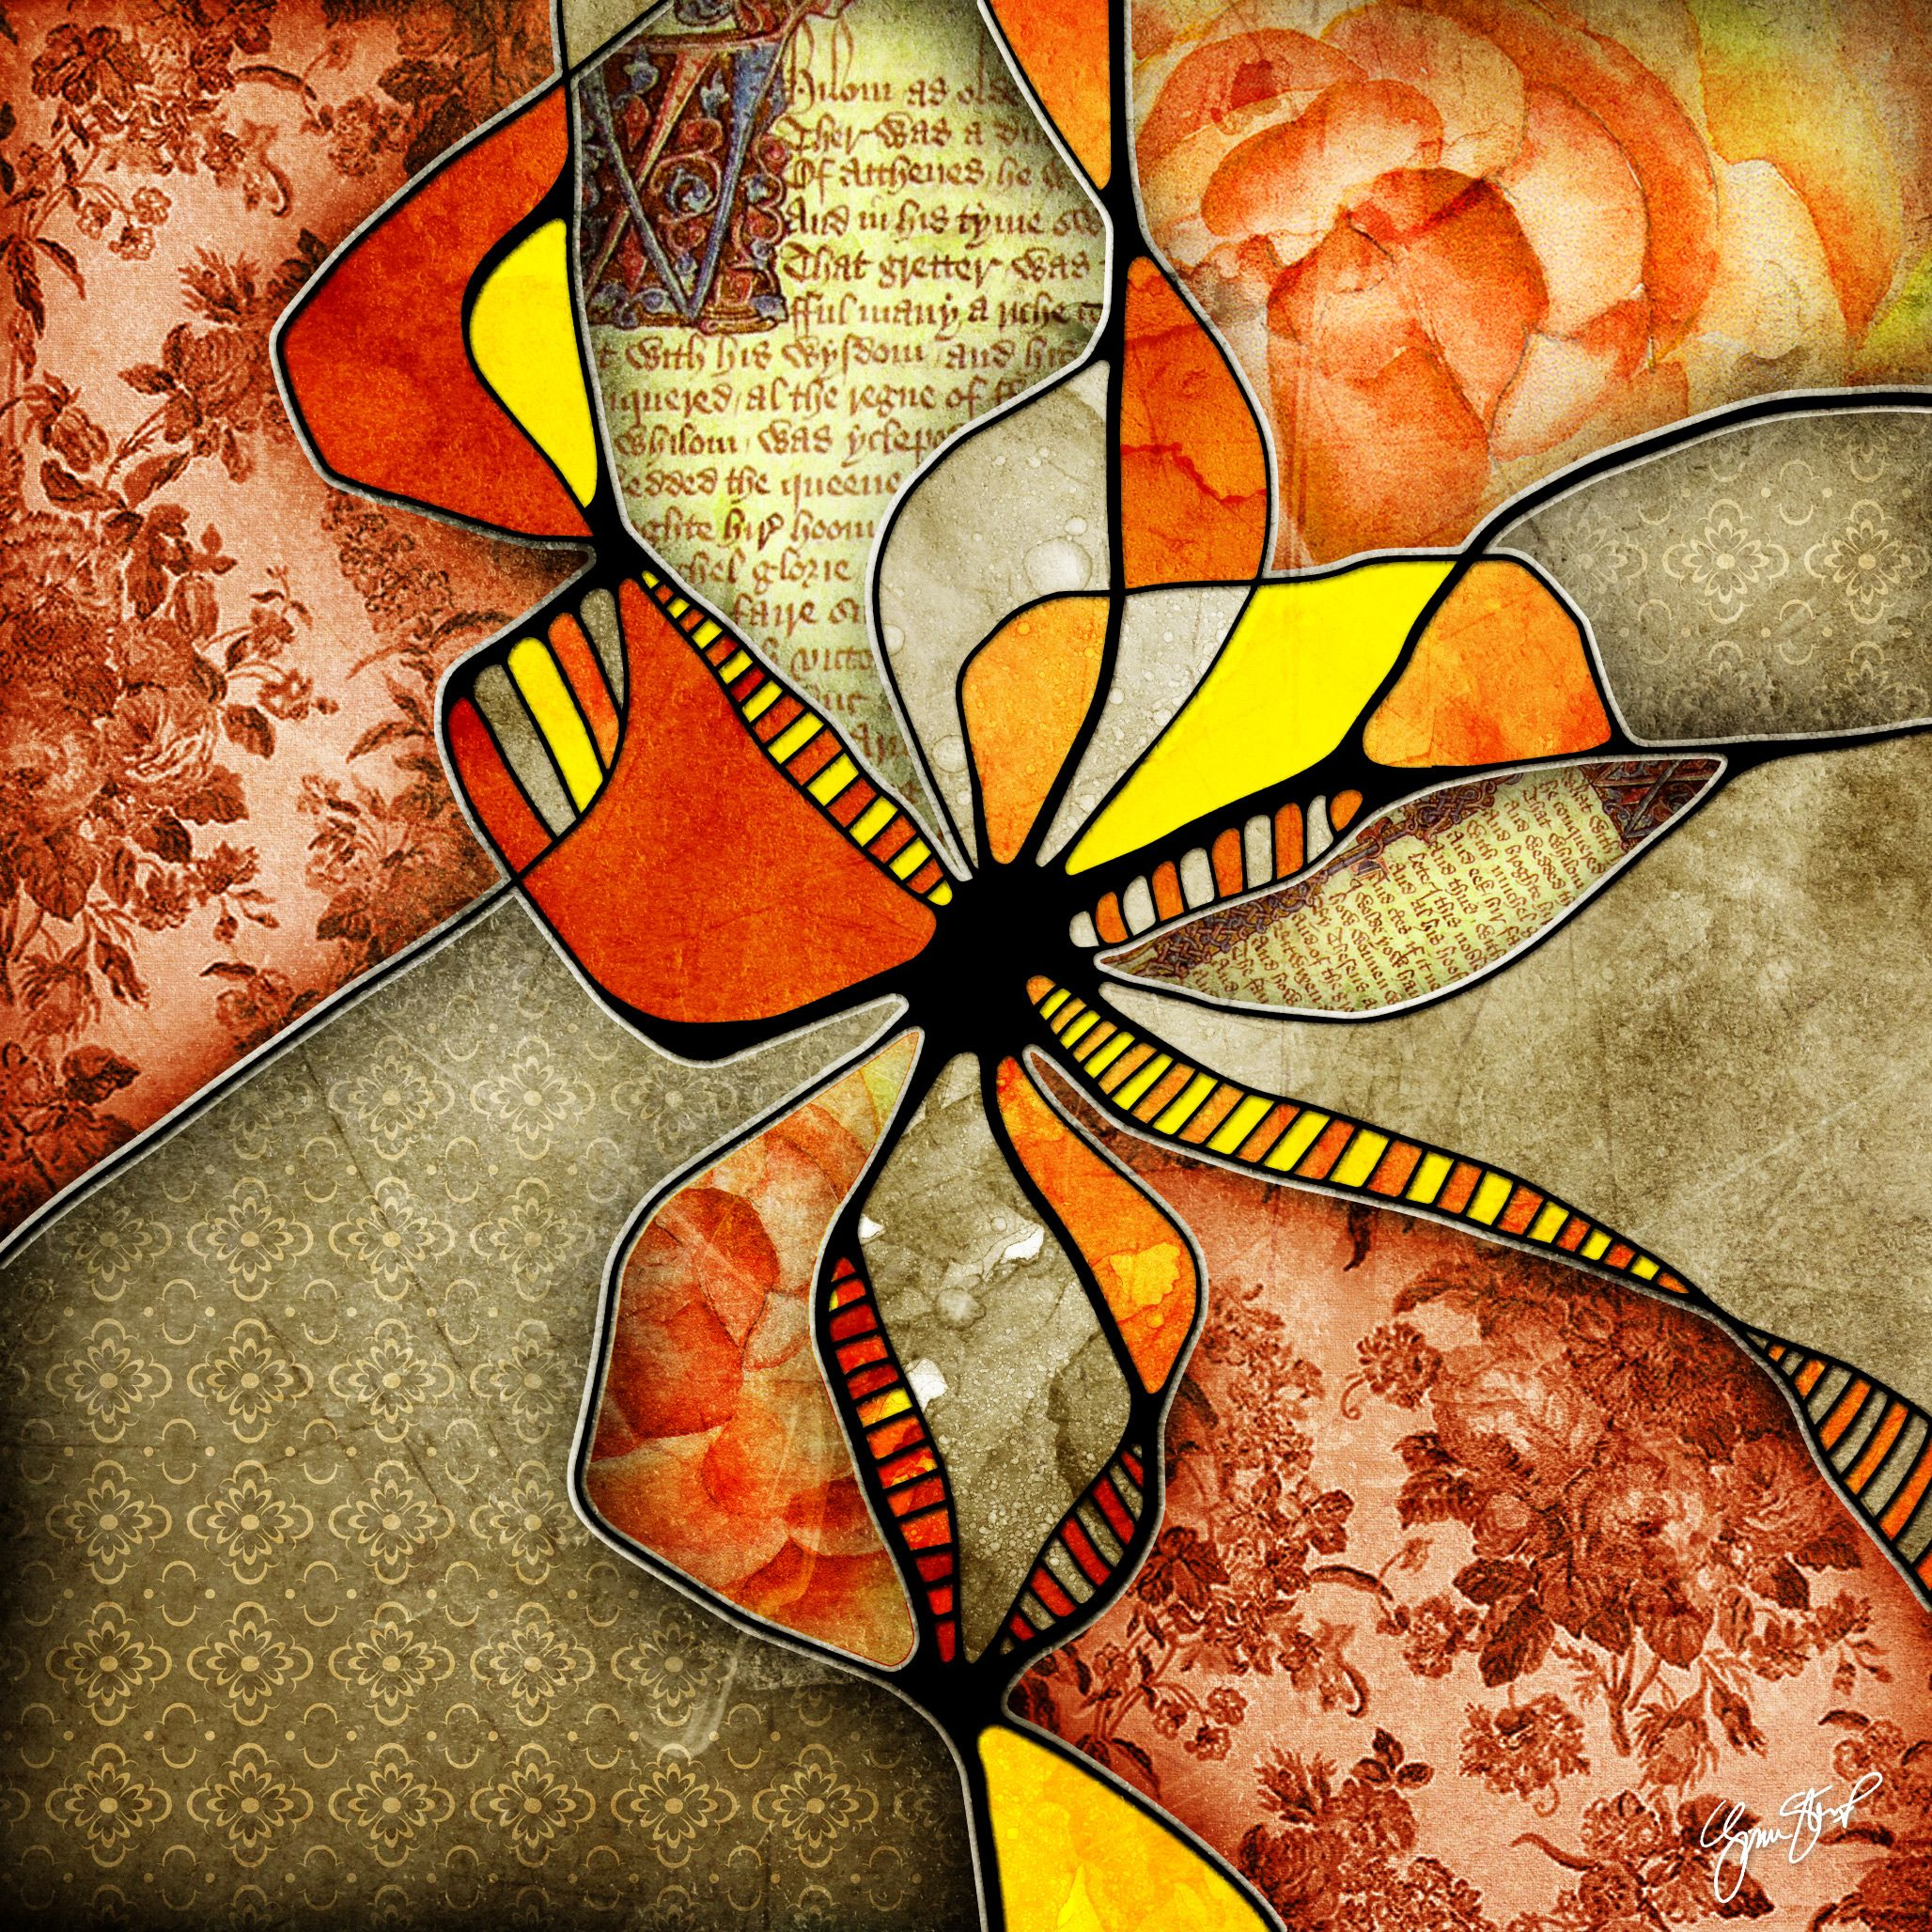 Collage mixed media art by Gina Startup